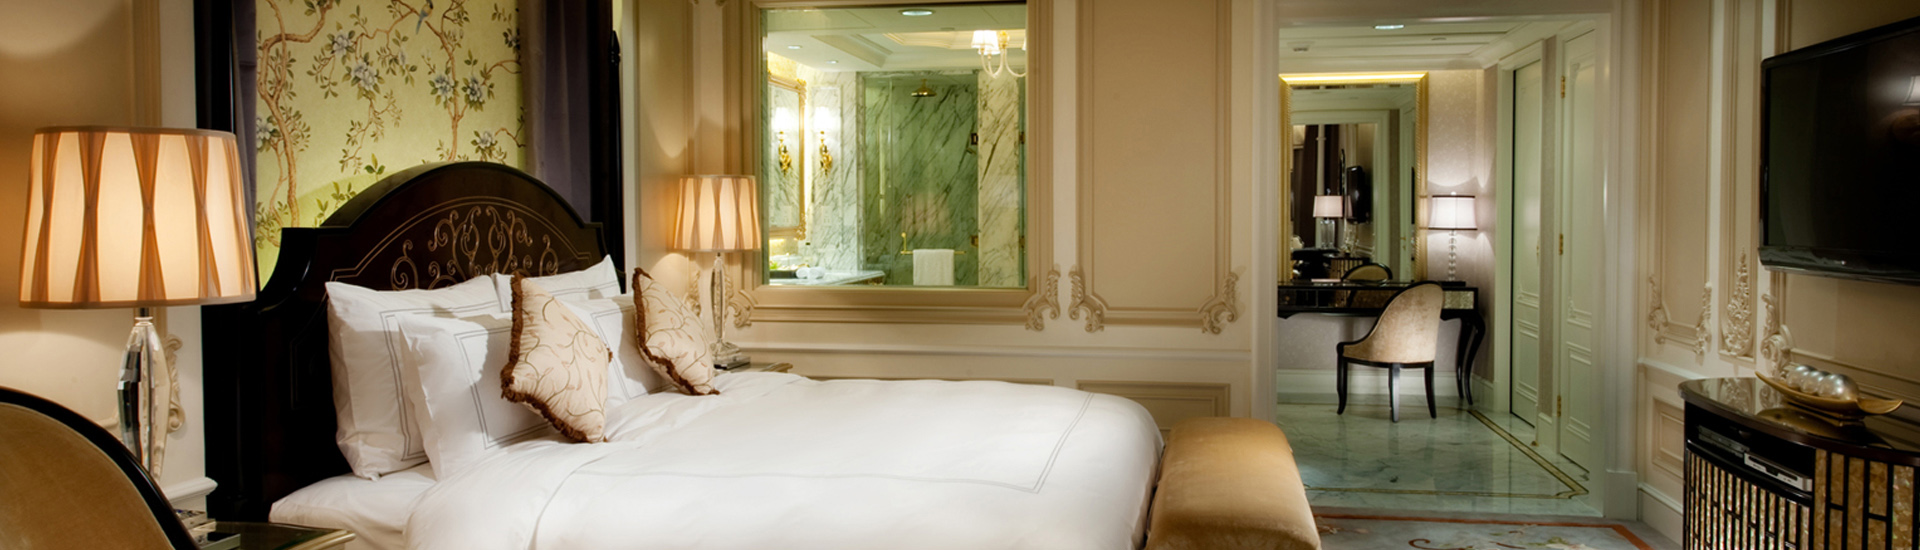 Accommodation Suite Banner 1